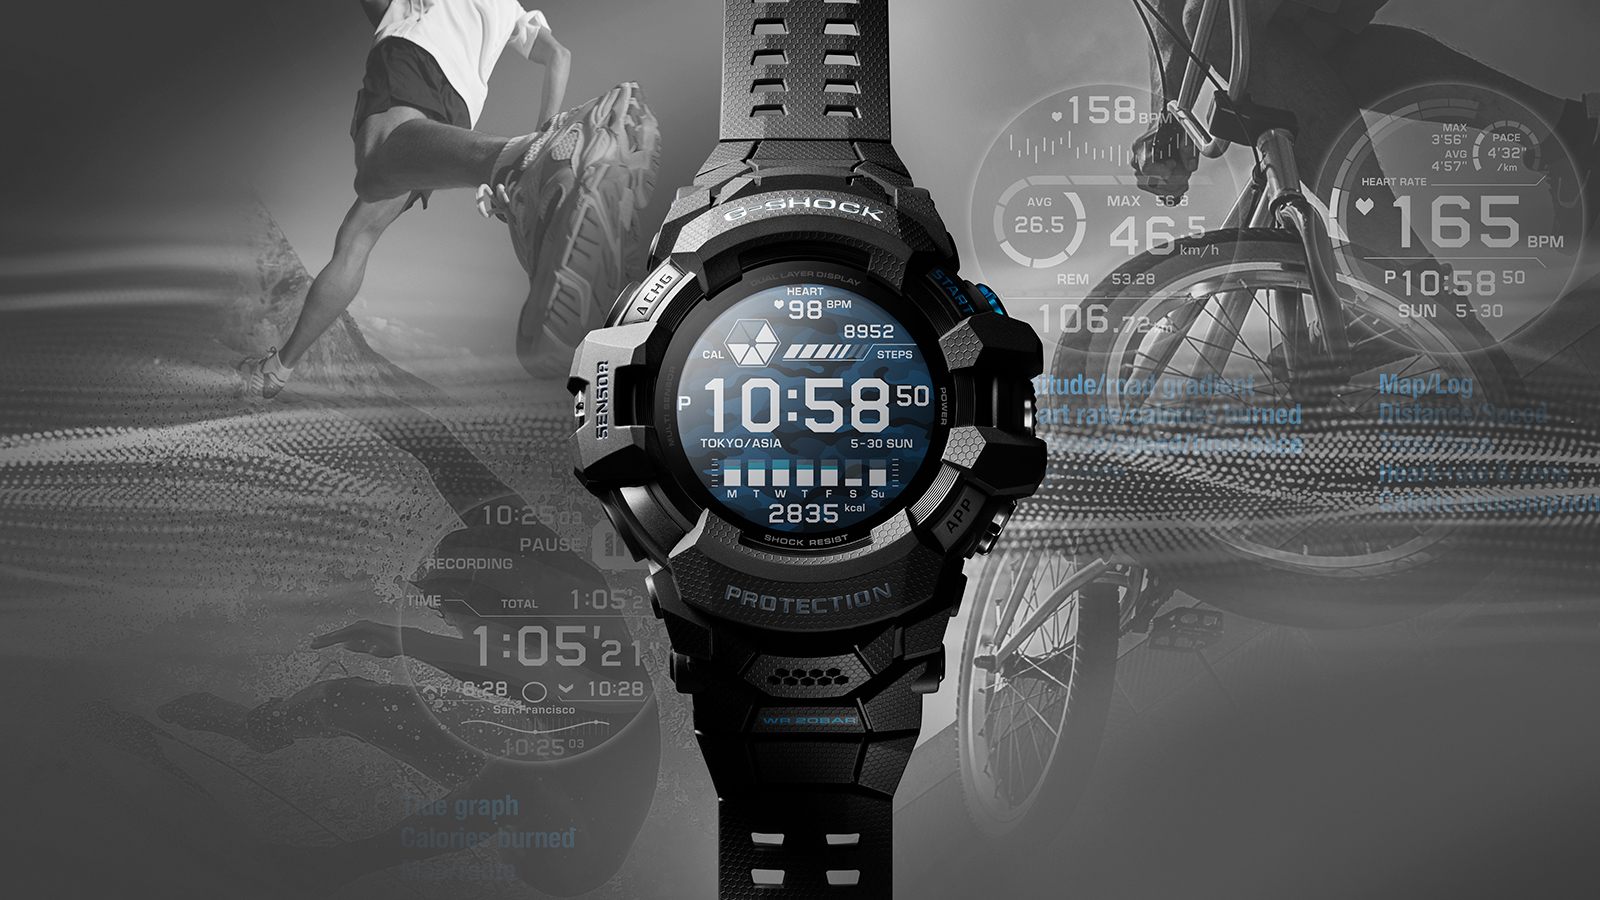 Casio's new G-SHOCK Smartwatch is powered by Wear OS from Google